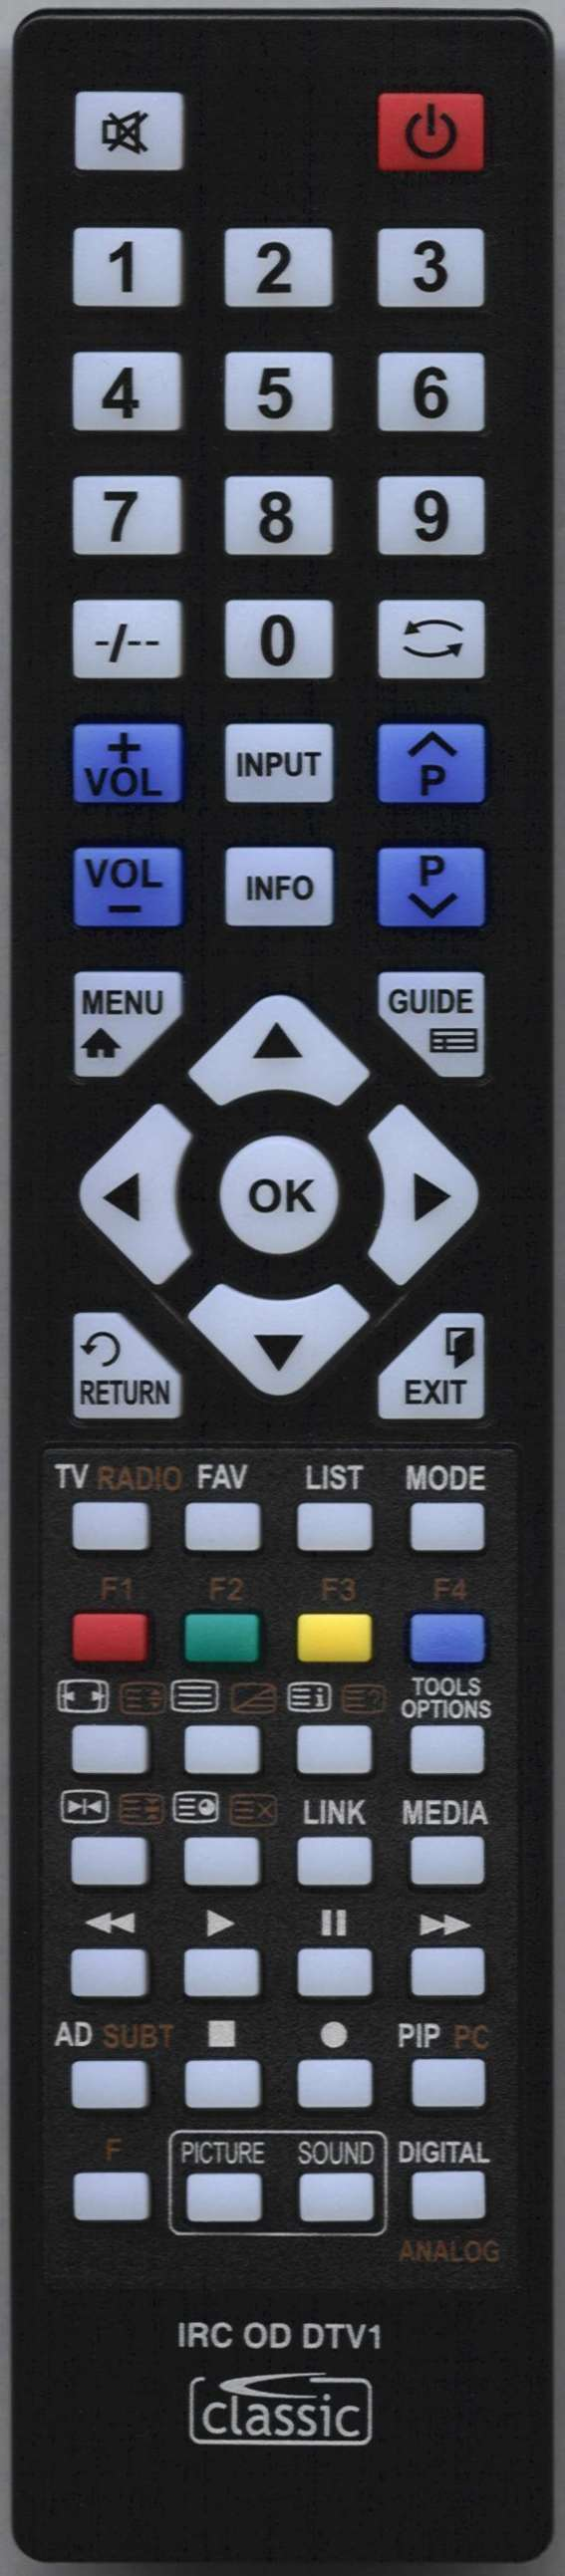 ORION C 1500SLTX Remote Control Alternative